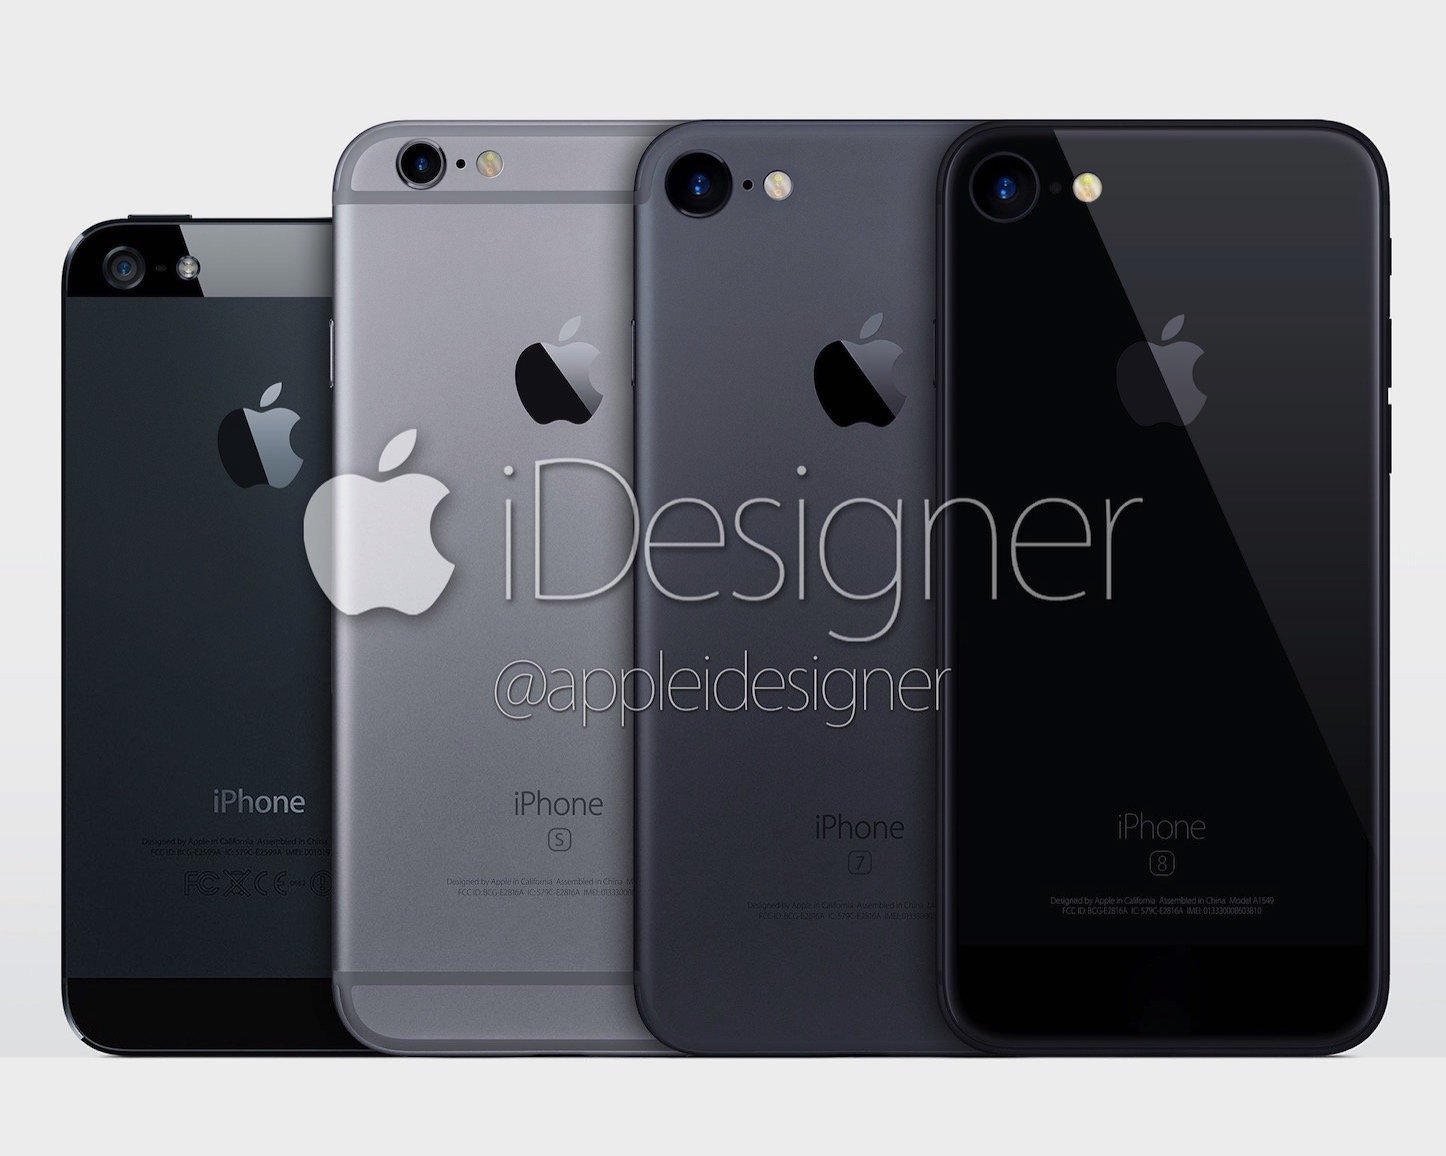 AppleDesigner New iPhone7 Color